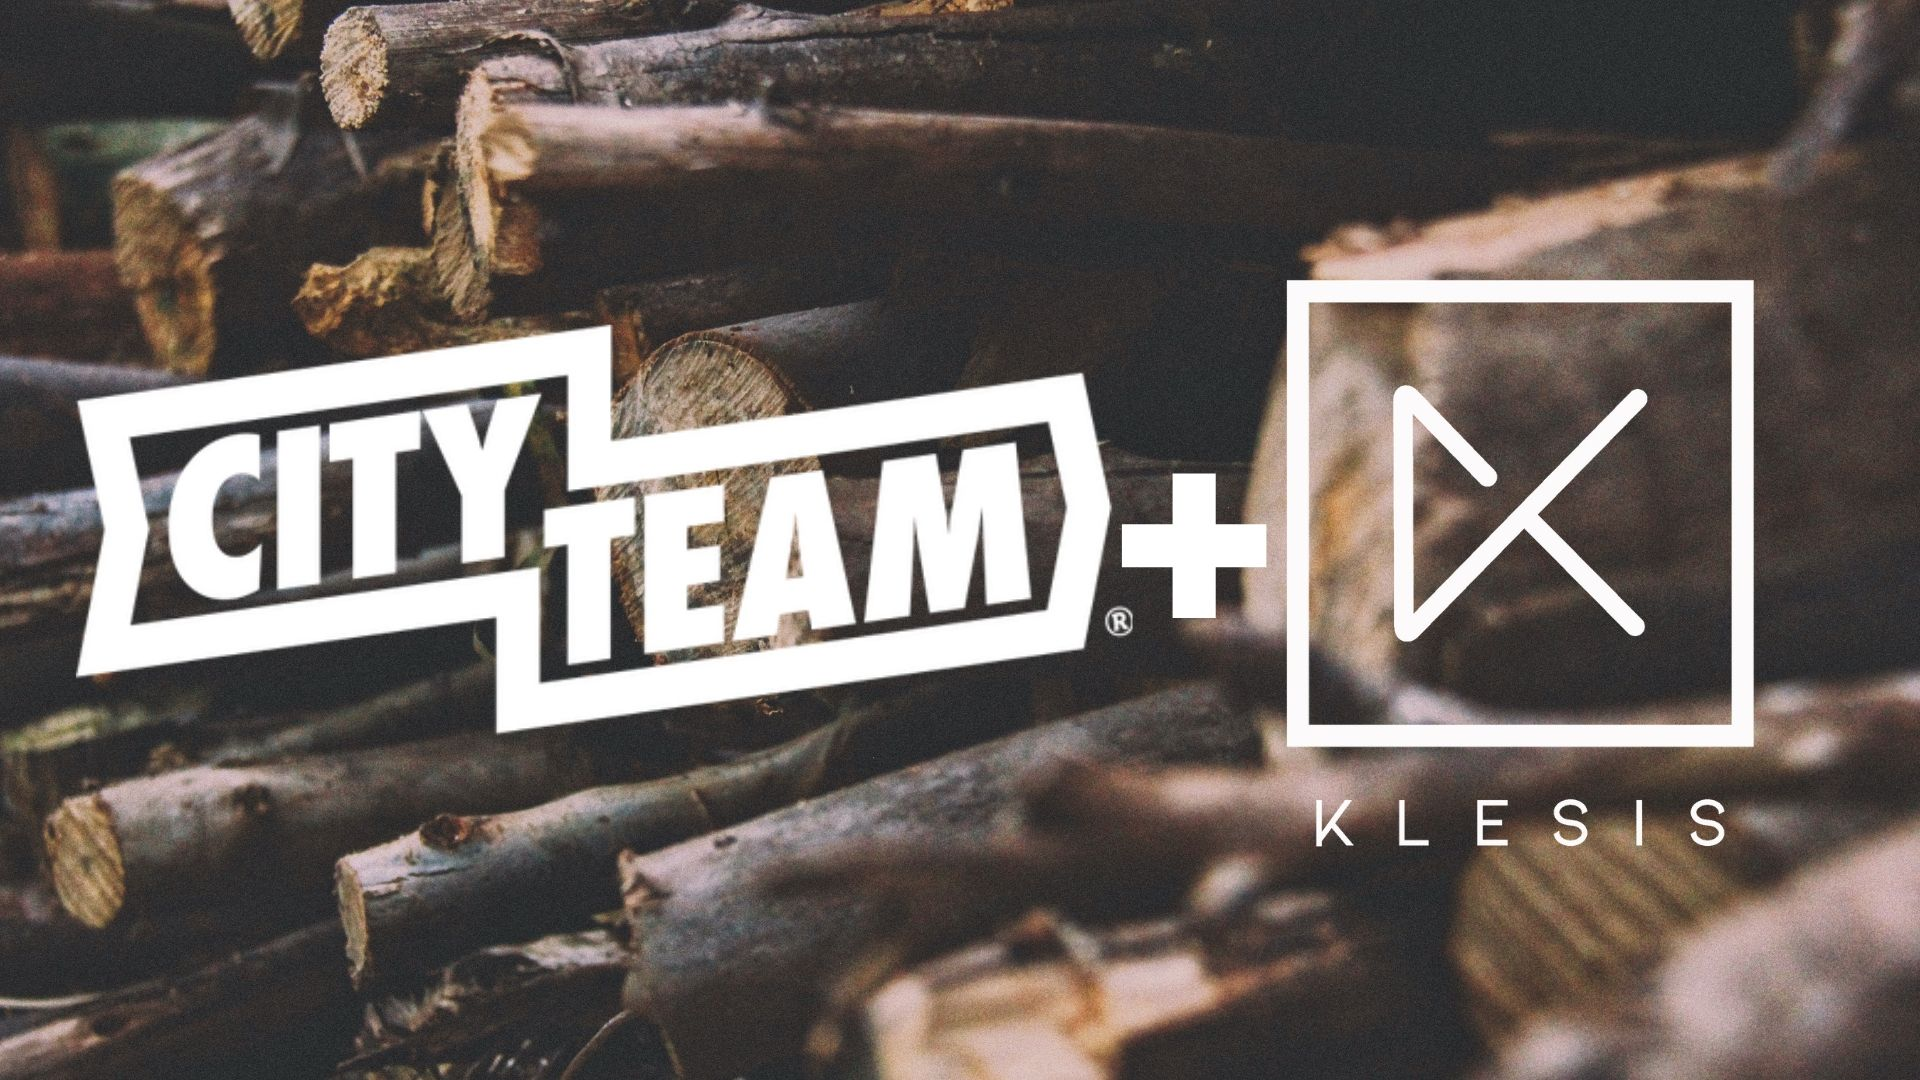 CityTeam (Homeless & Compassion Ministry)